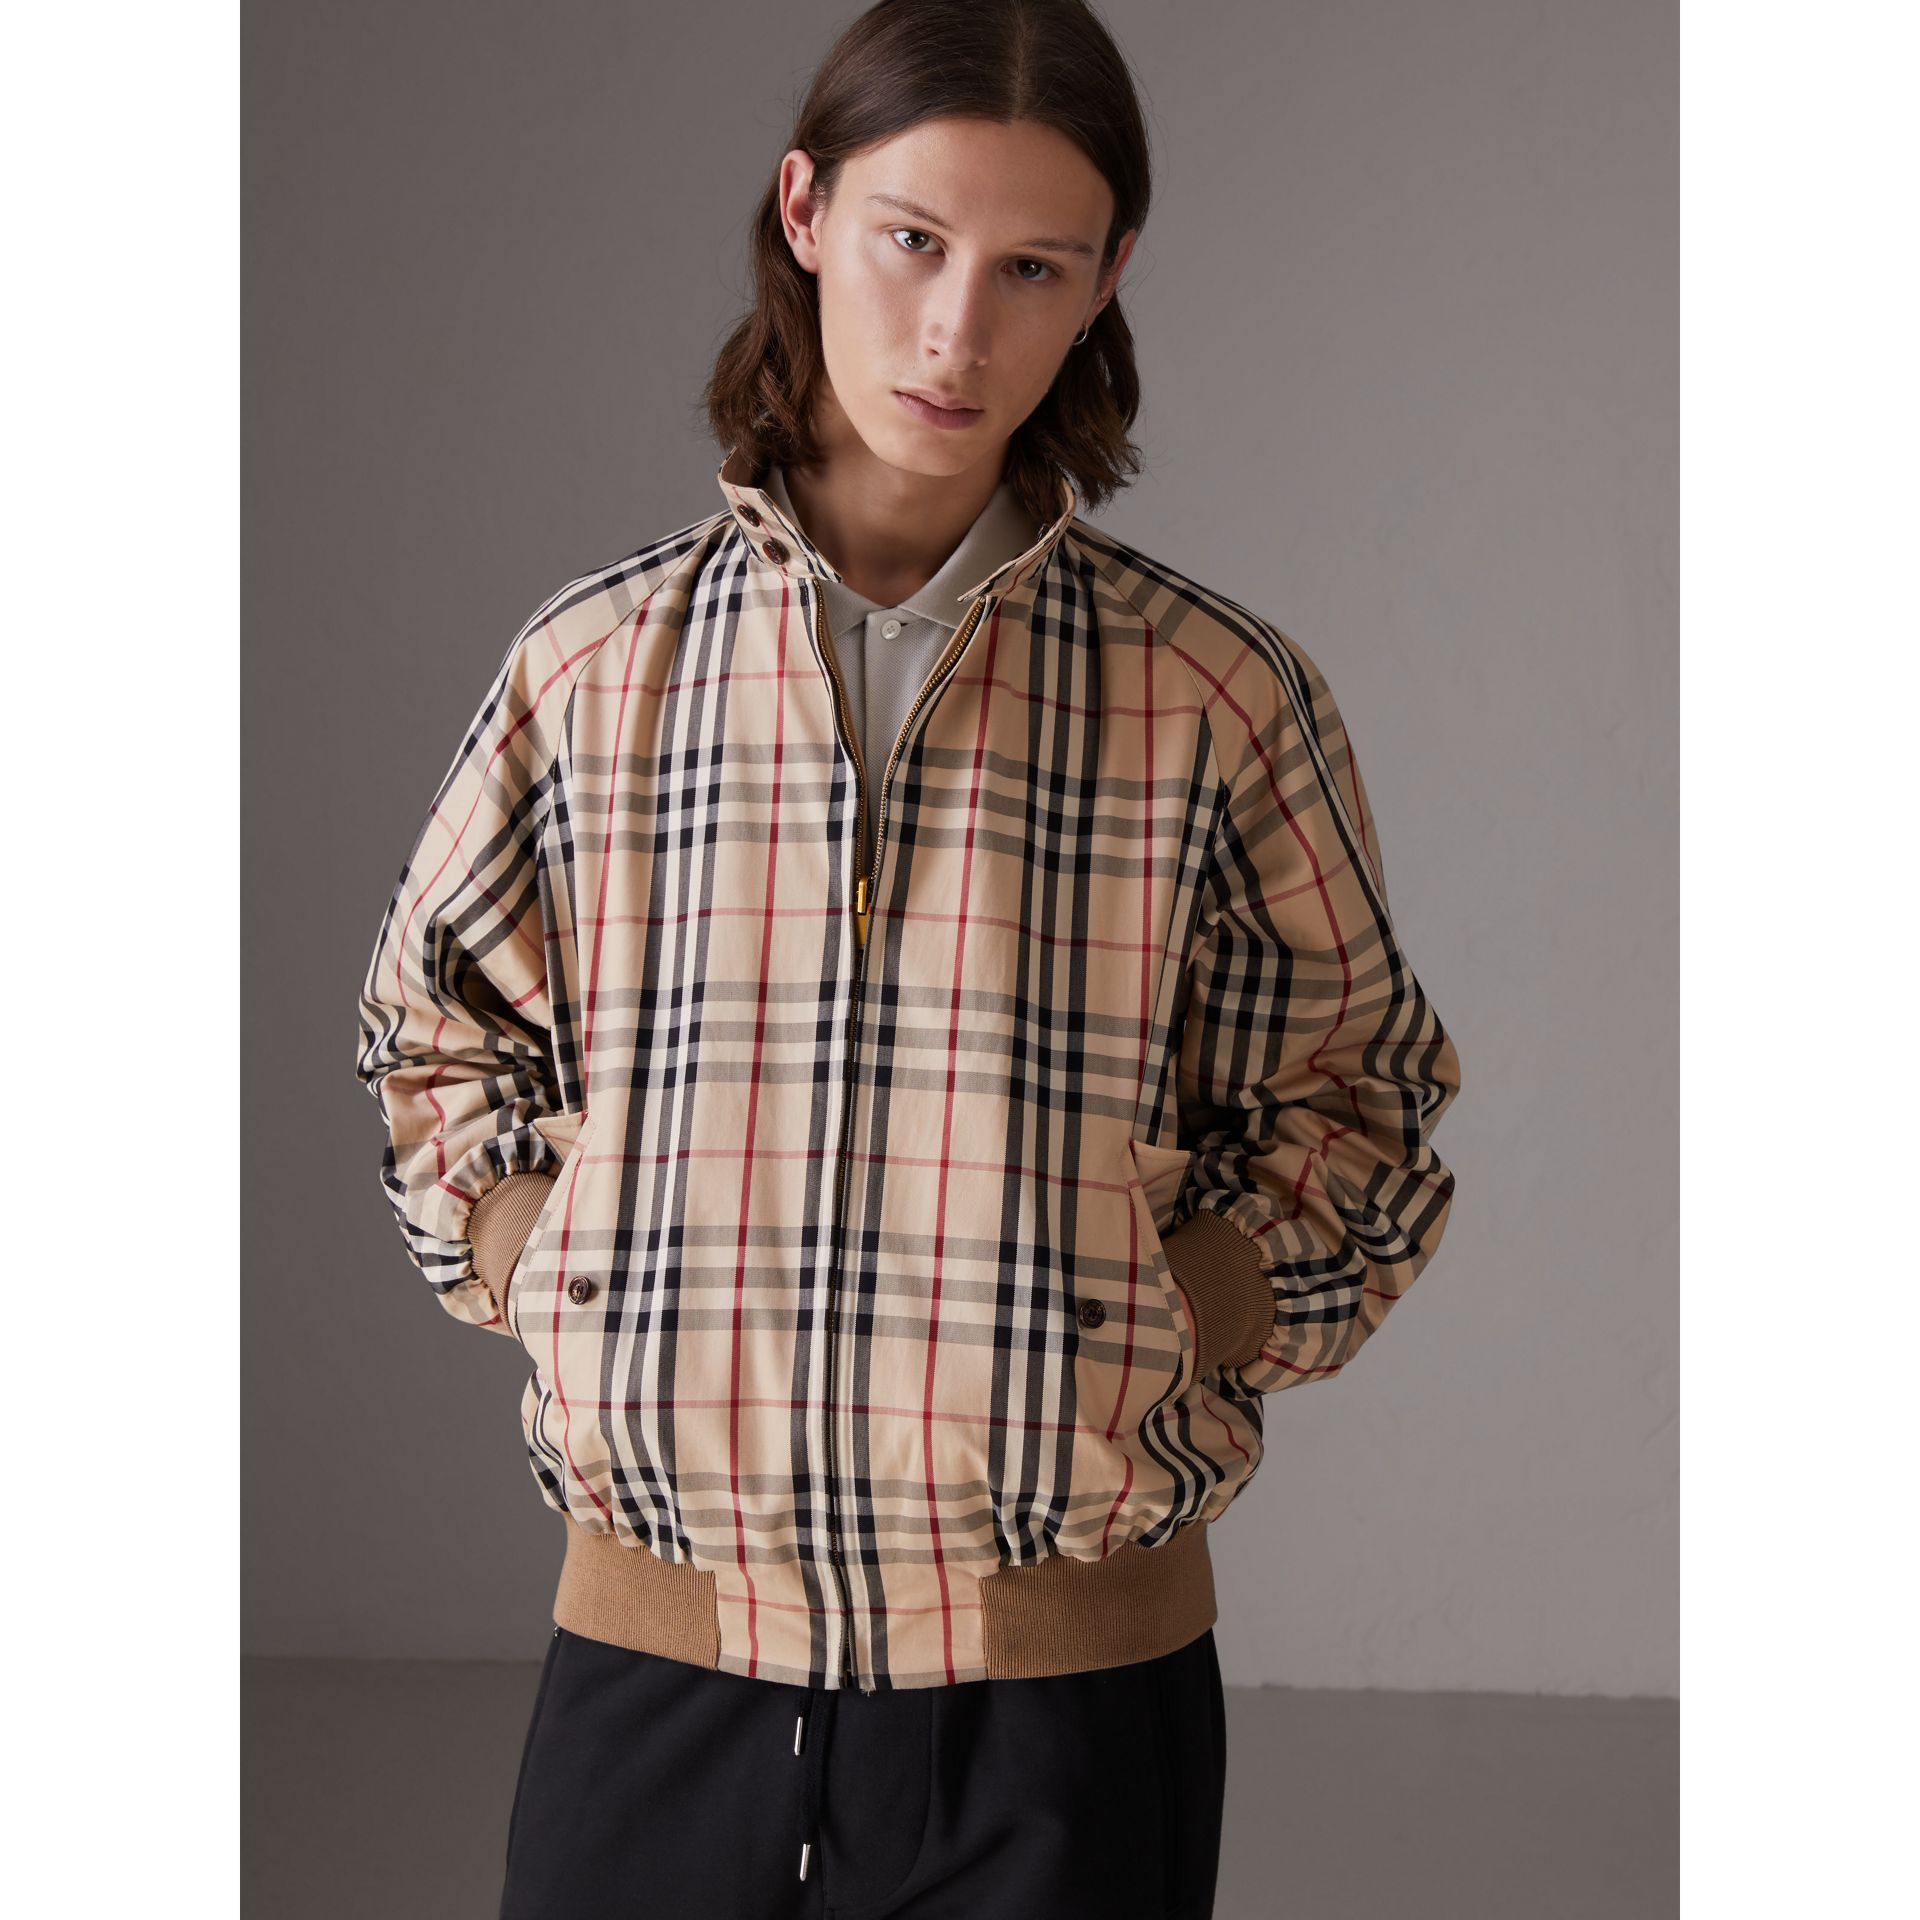 Gosha x Burberry Reversible Harrington Jacket in Honey | Burberry - gallery image 2